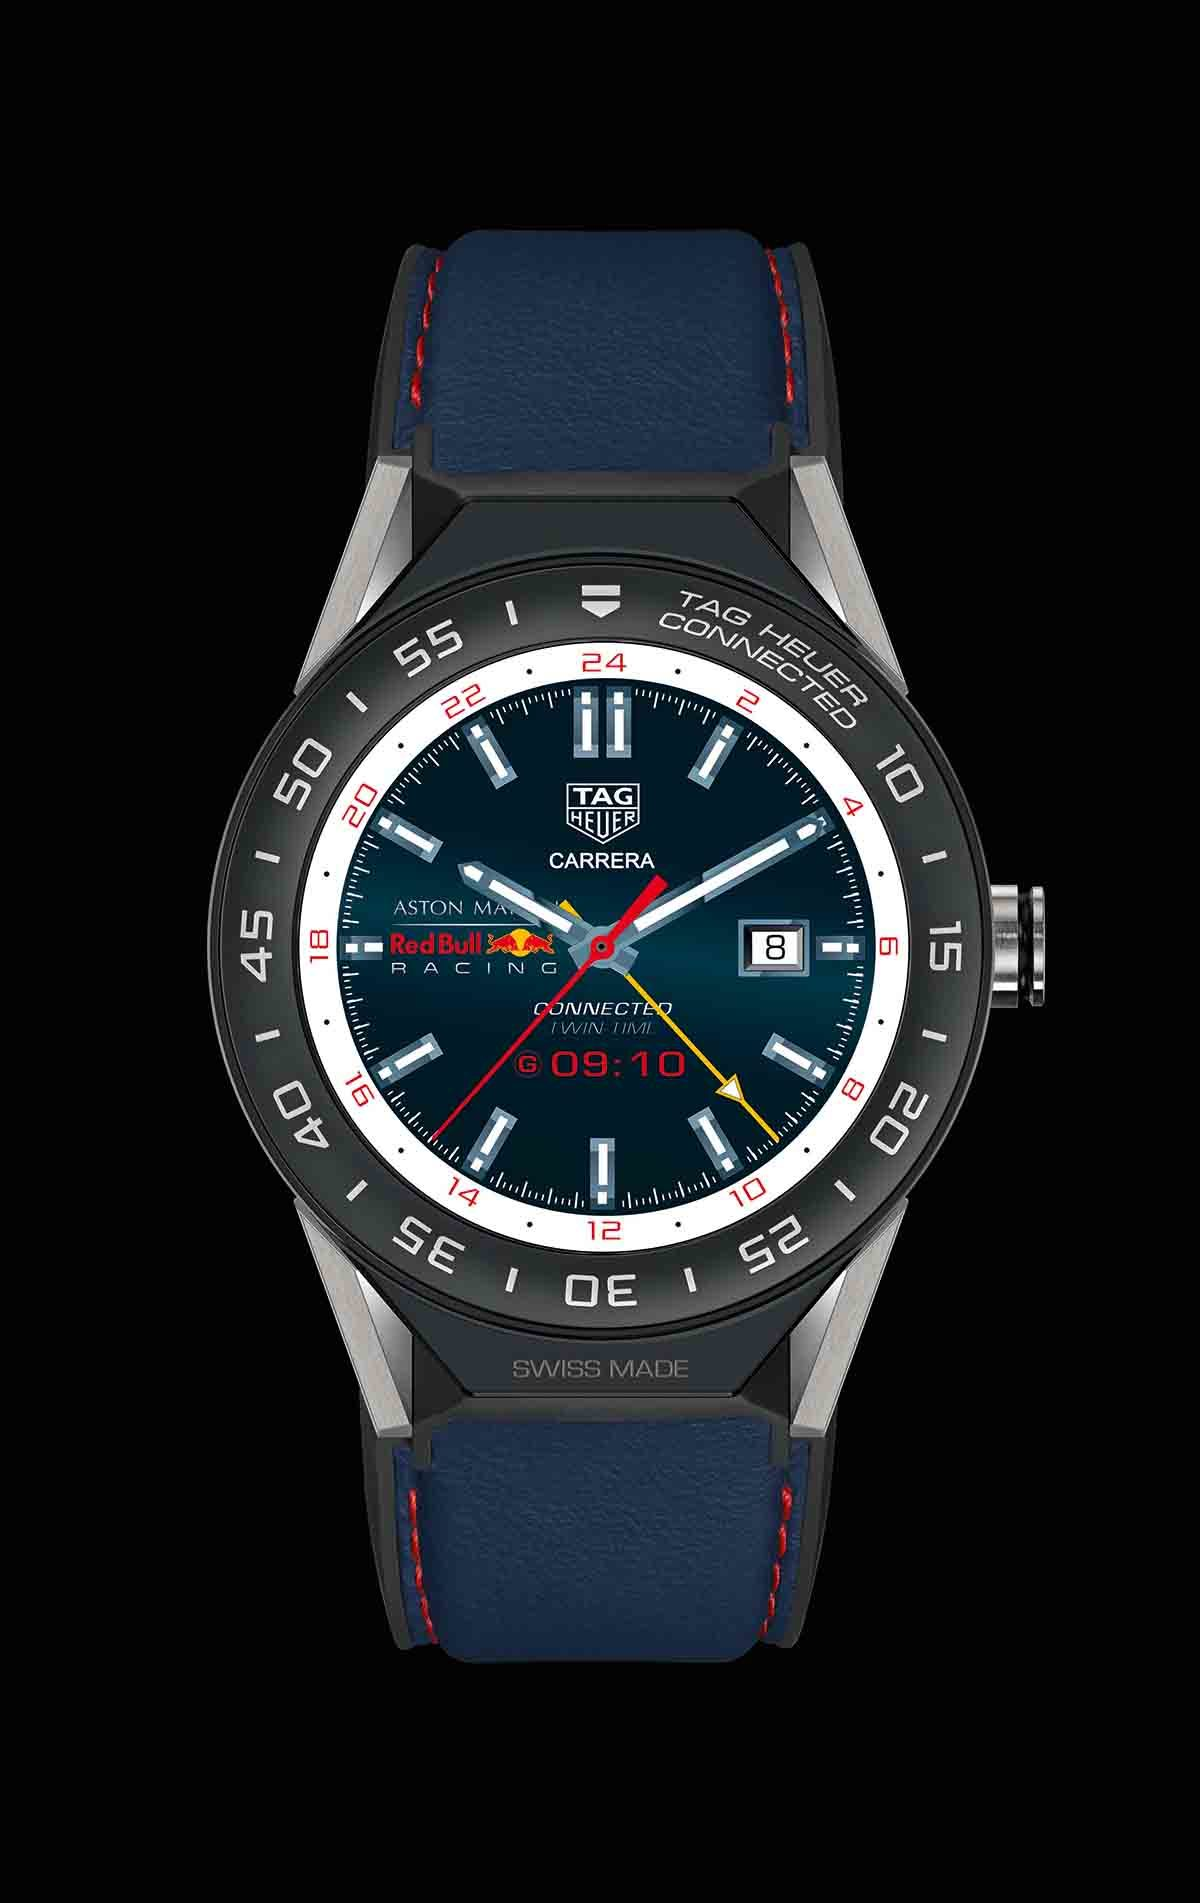 neue uhr tag heuer aston martin red bull racing formula. Black Bedroom Furniture Sets. Home Design Ideas